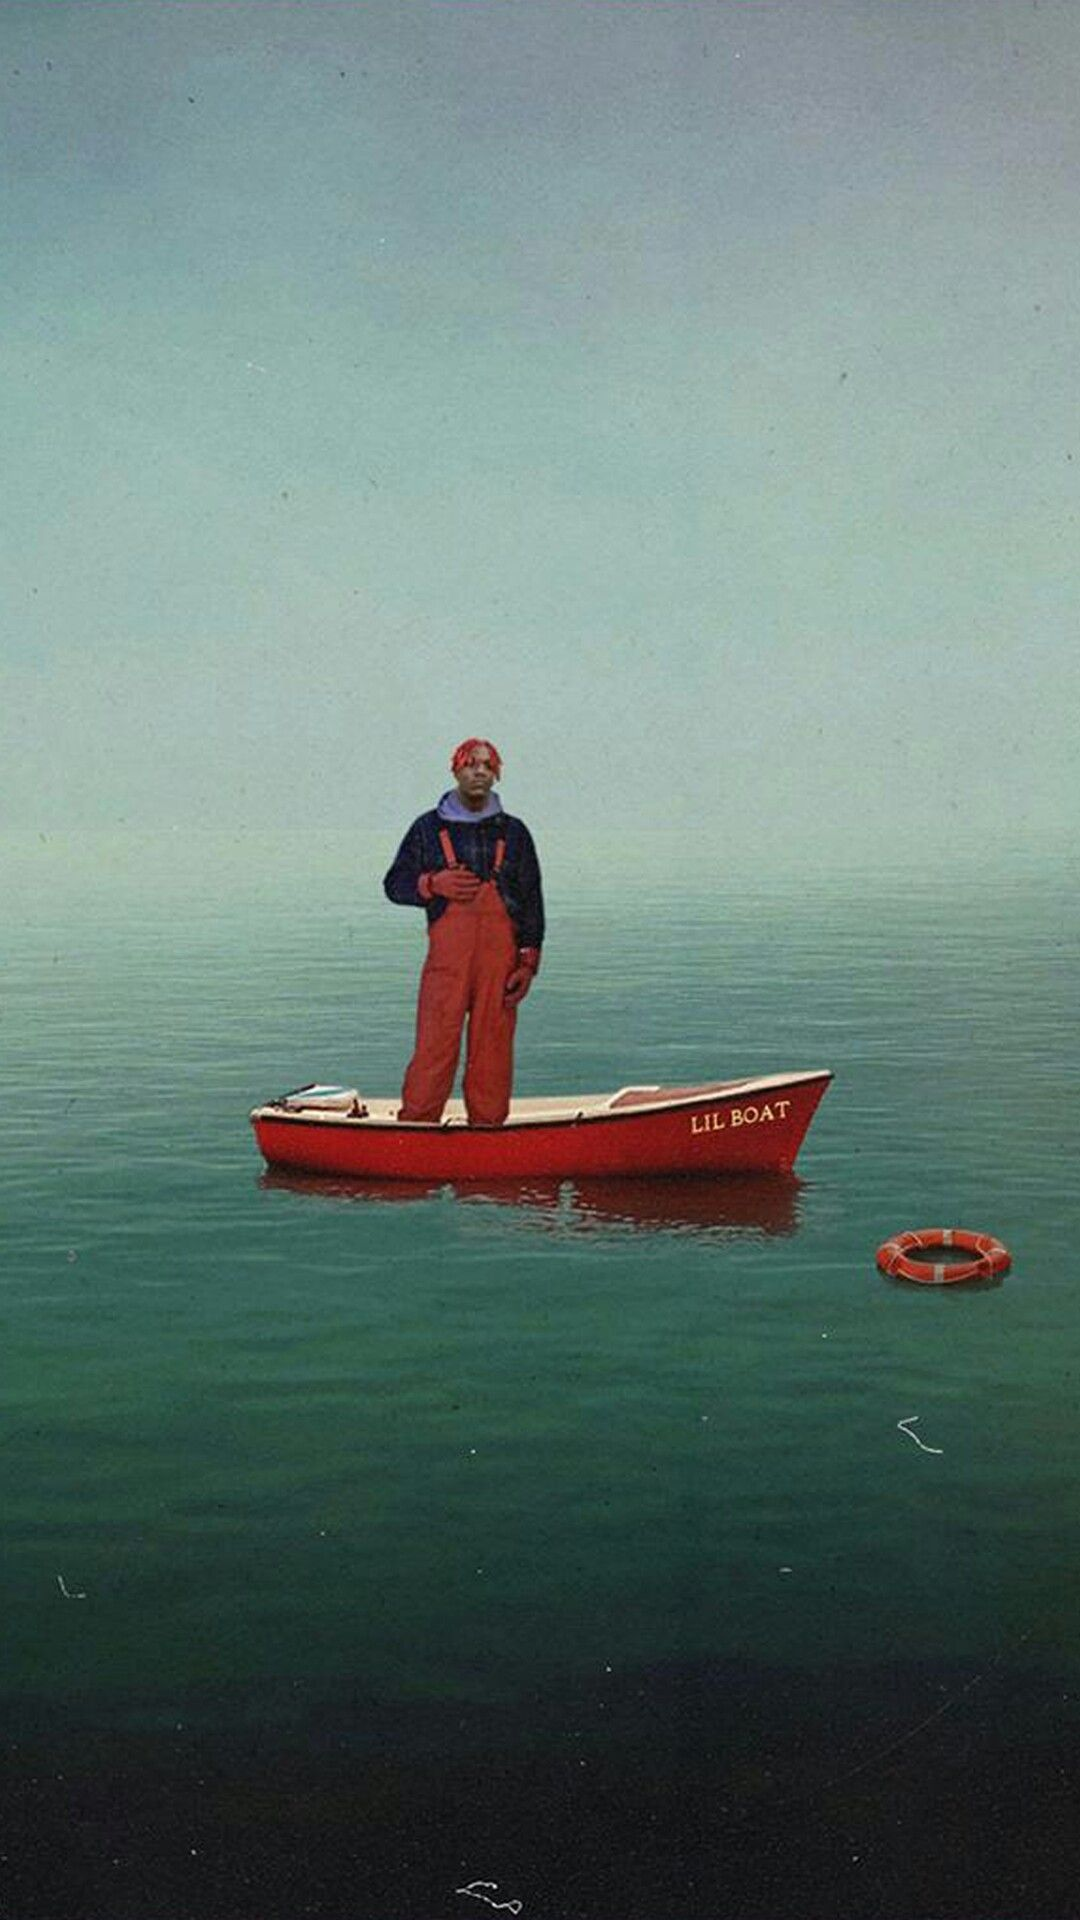 1080x1920 Lil Boat Phone Wallpaper   Lil Yachty   Pinterest   Boating ...